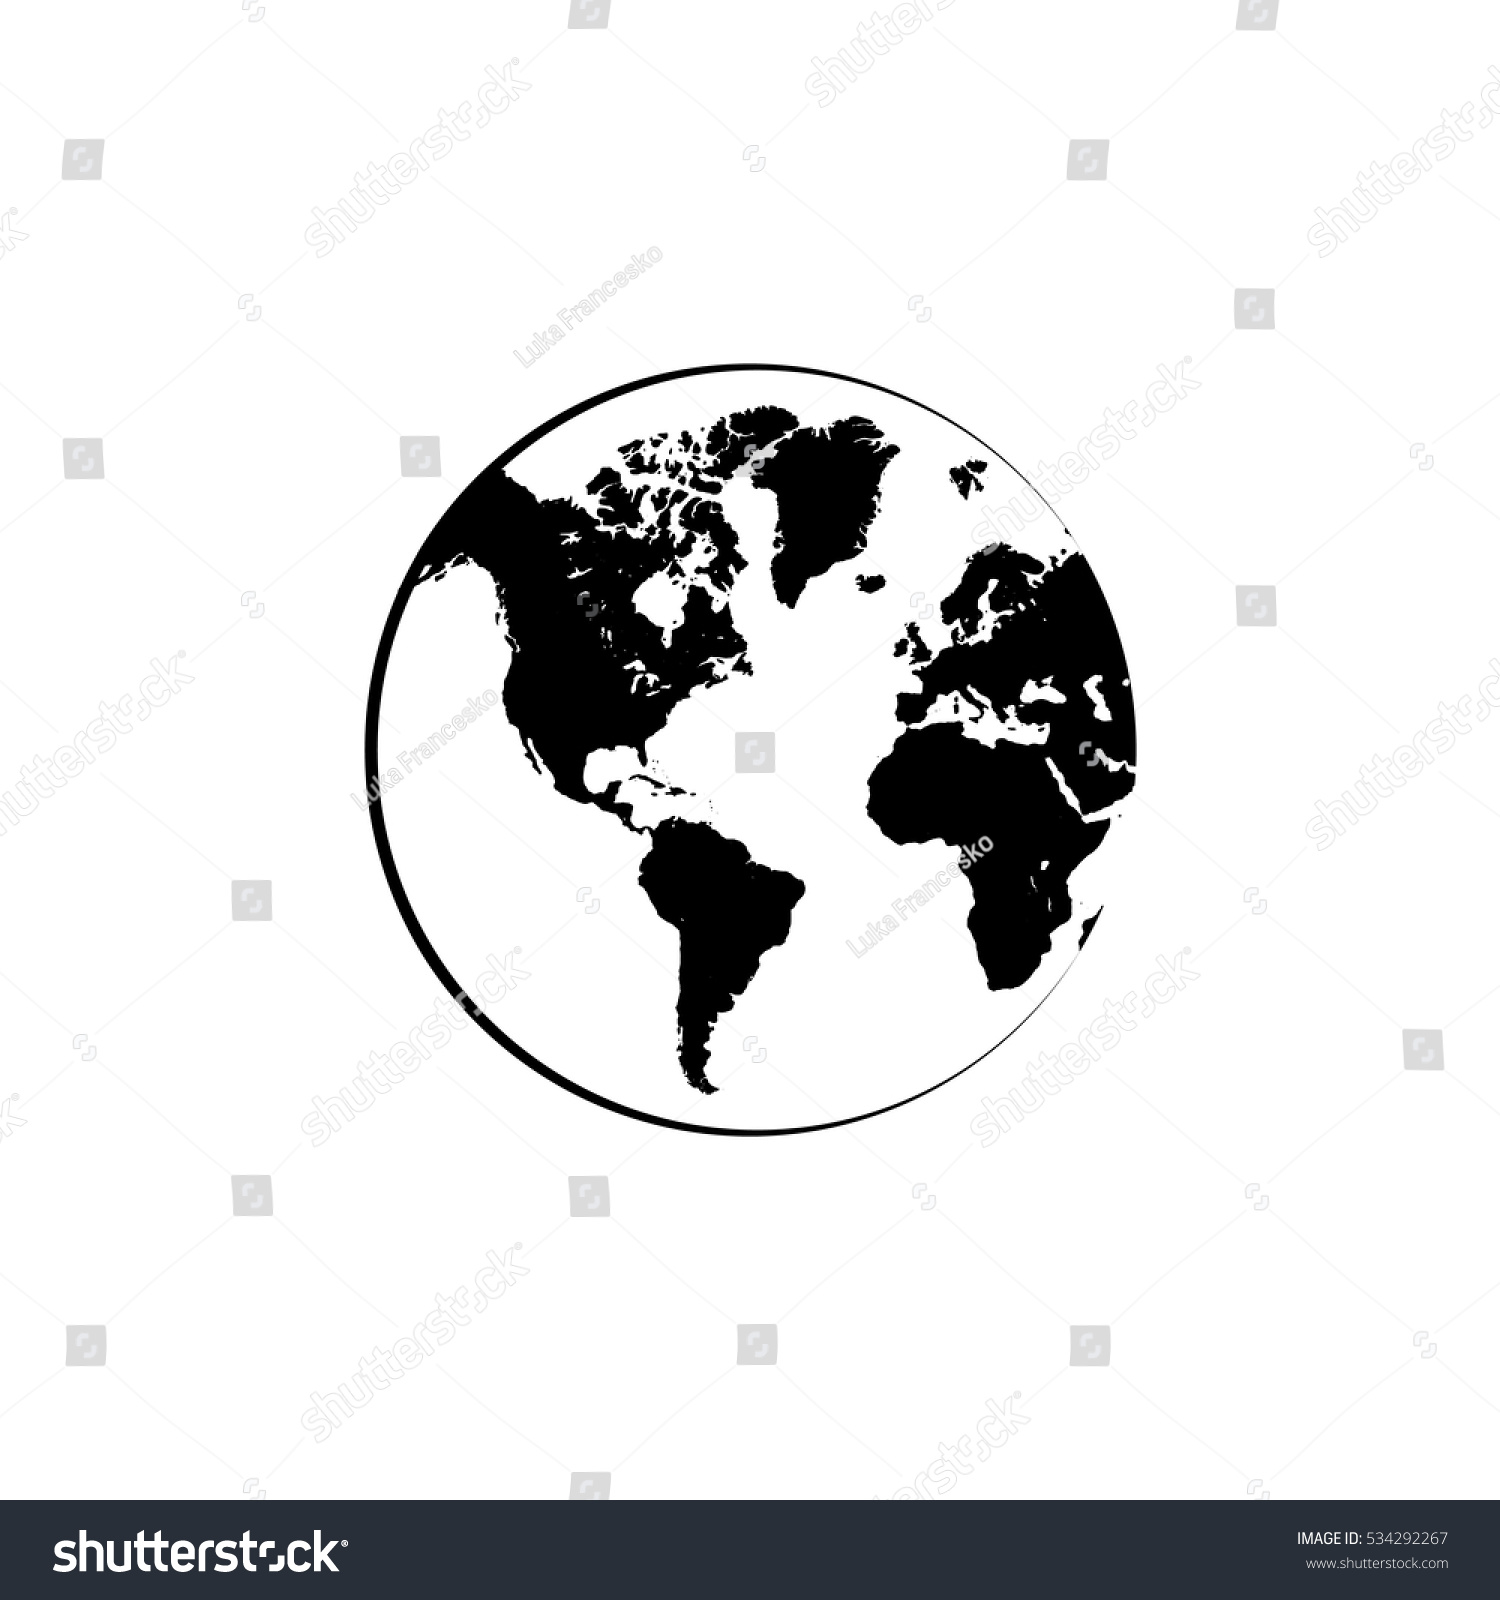 Connection networking world map vector icon vectores en stock connection networking world map vector icon gumiabroncs Gallery